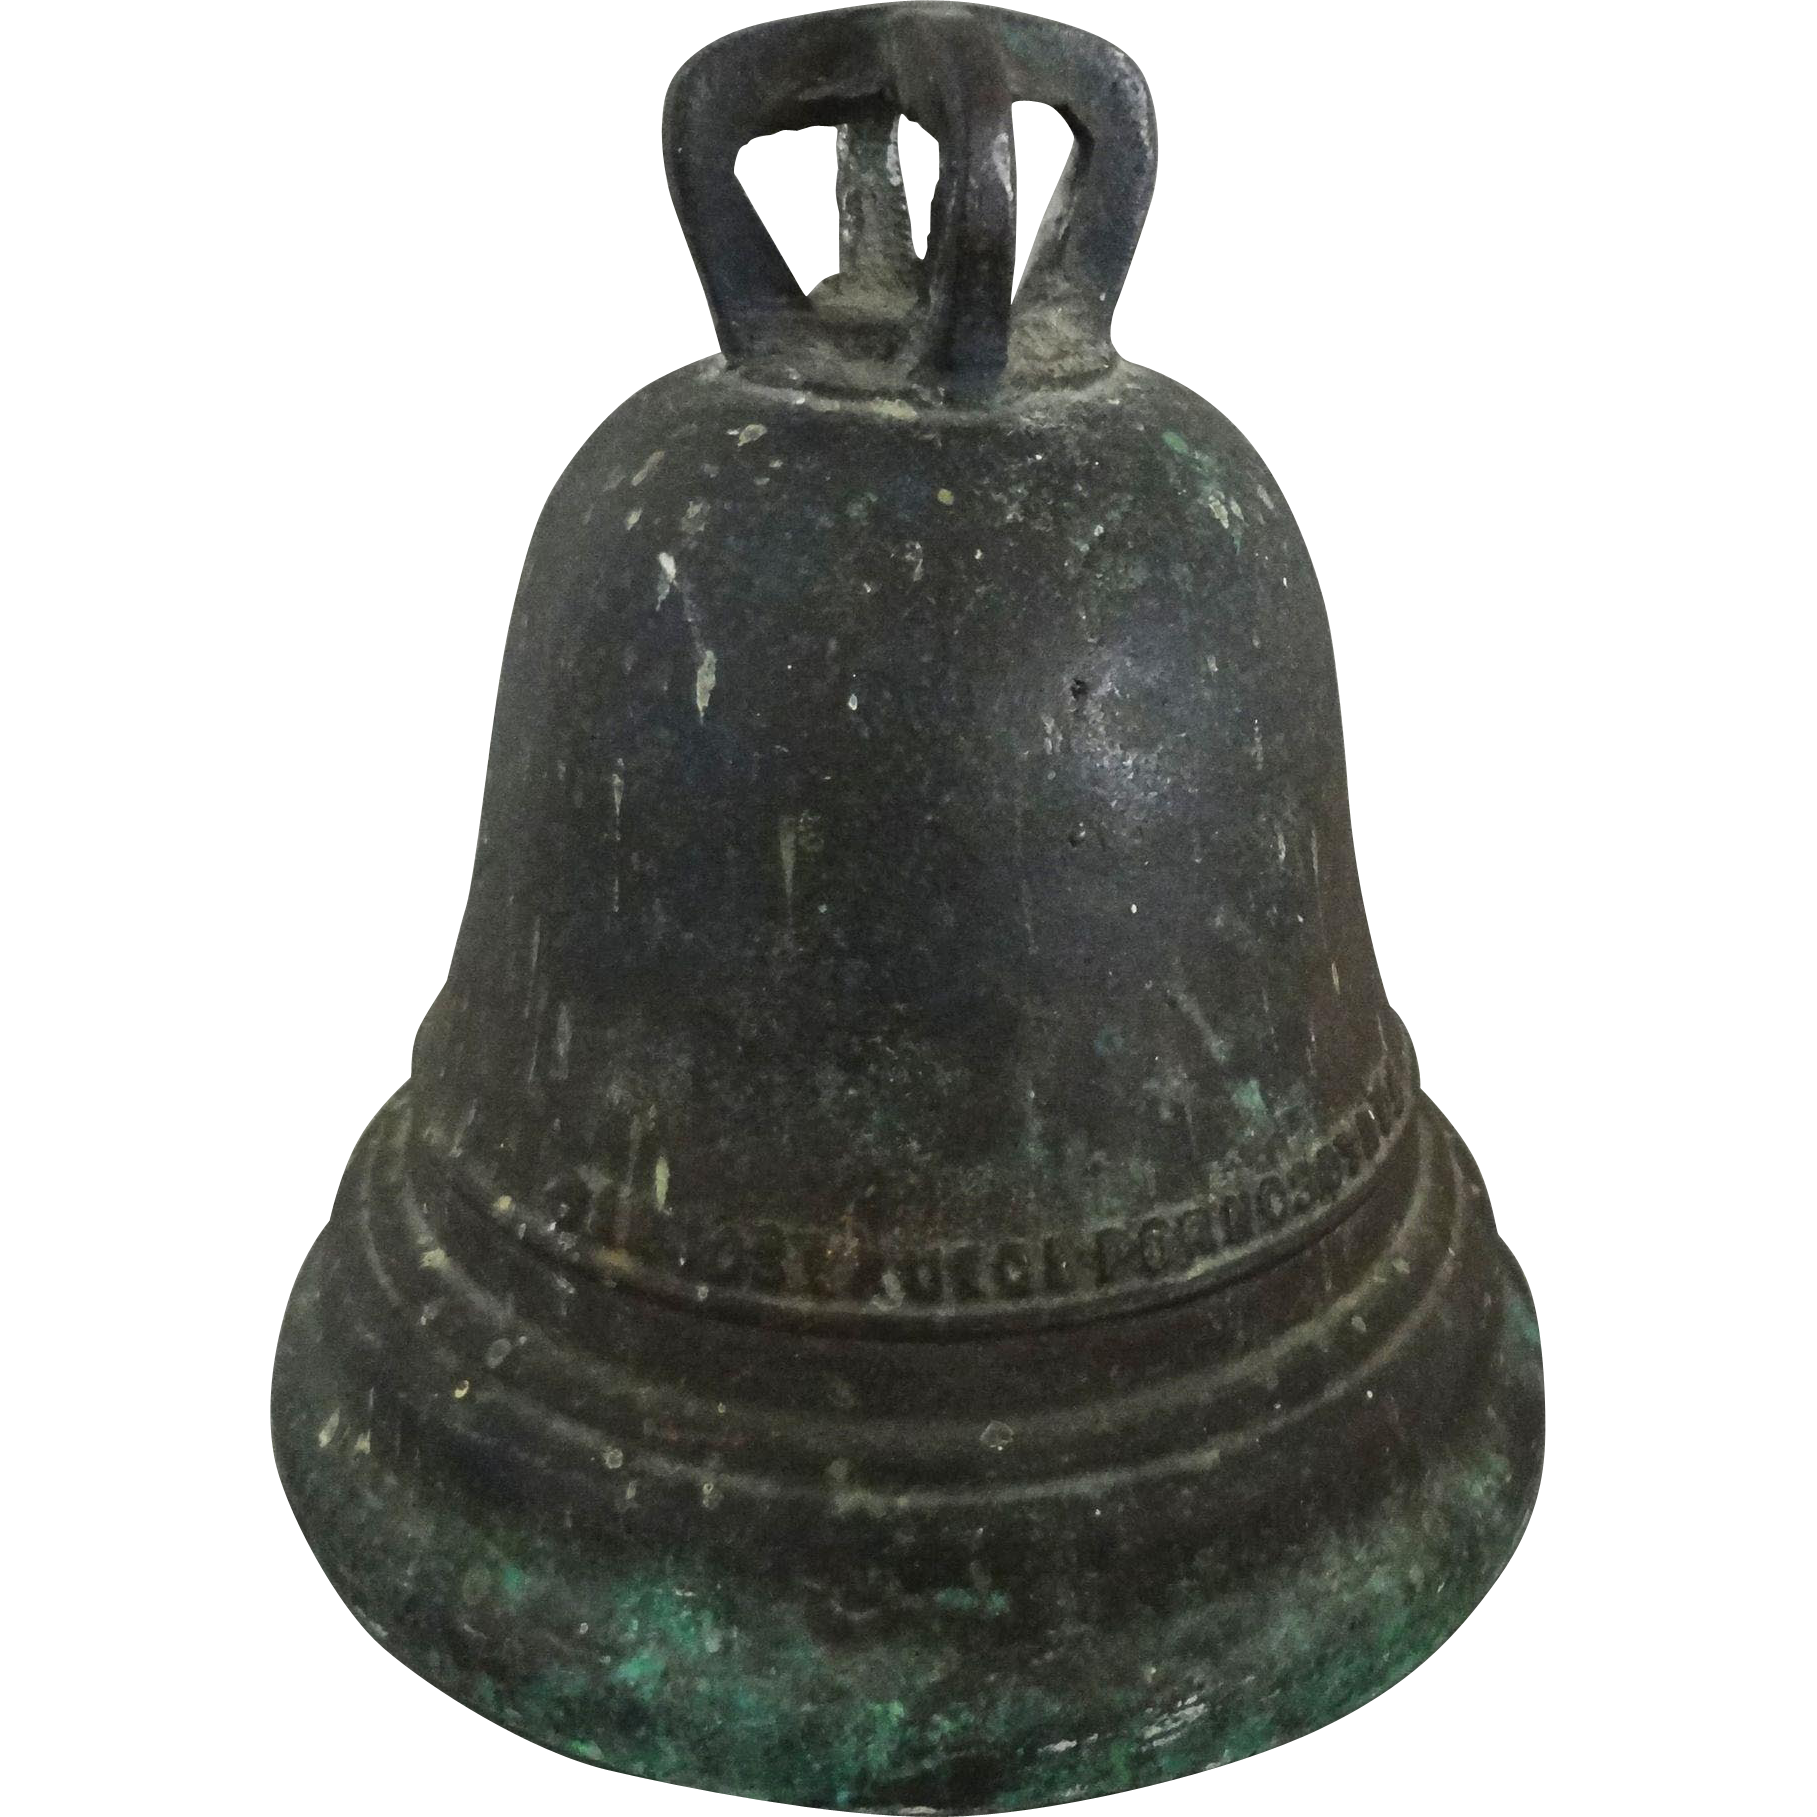 Inscribed Cast Bronze Bell after Mission San Miguel Bell, Santa Fe, New Mexico